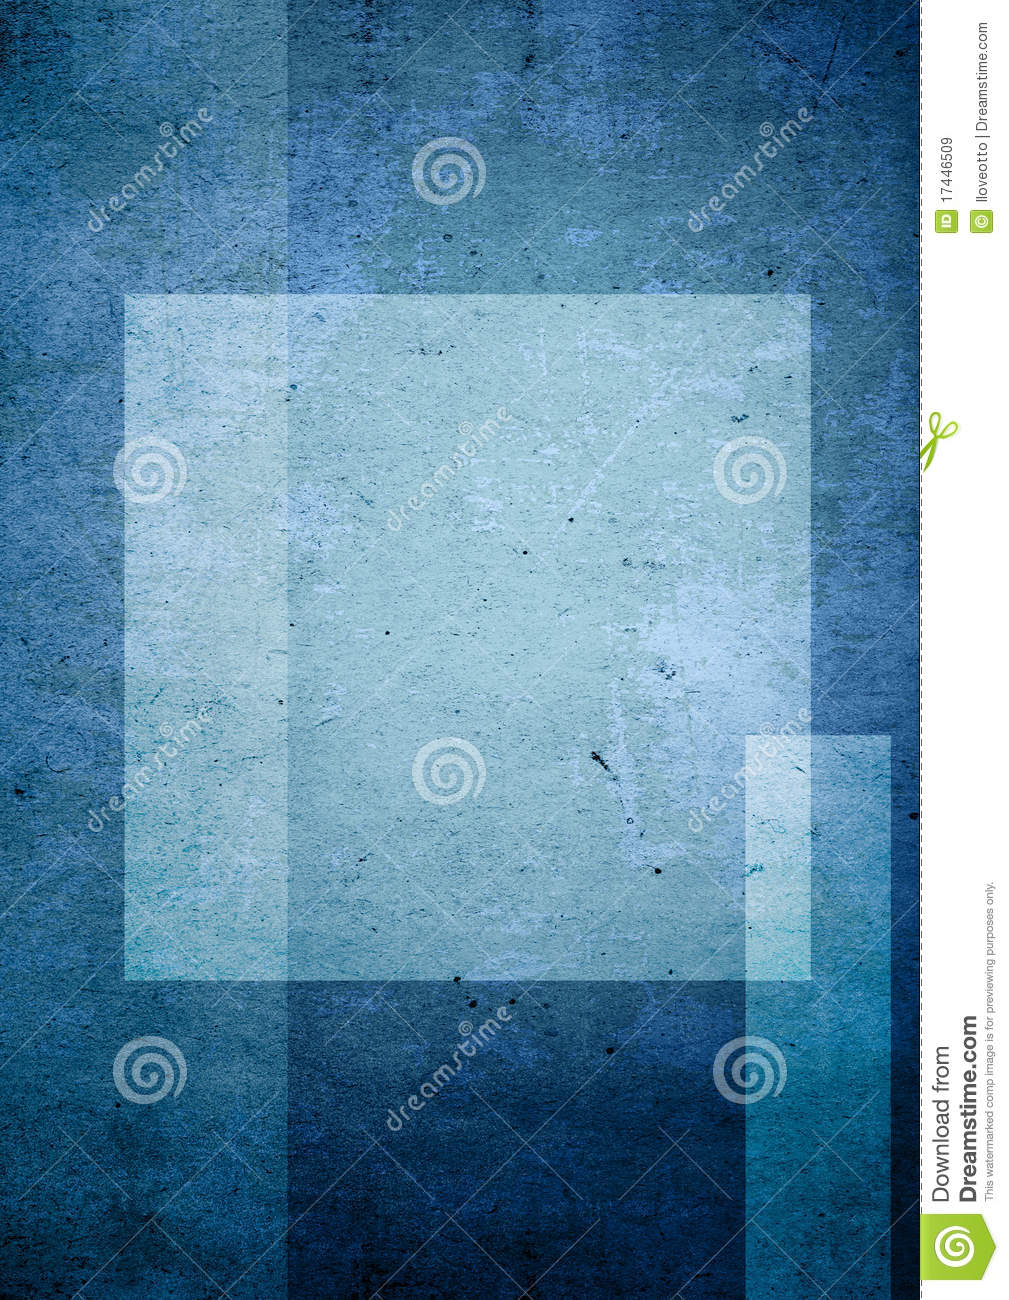 Book Back Cover Background : Backgrounds book cover royalty free stock images image